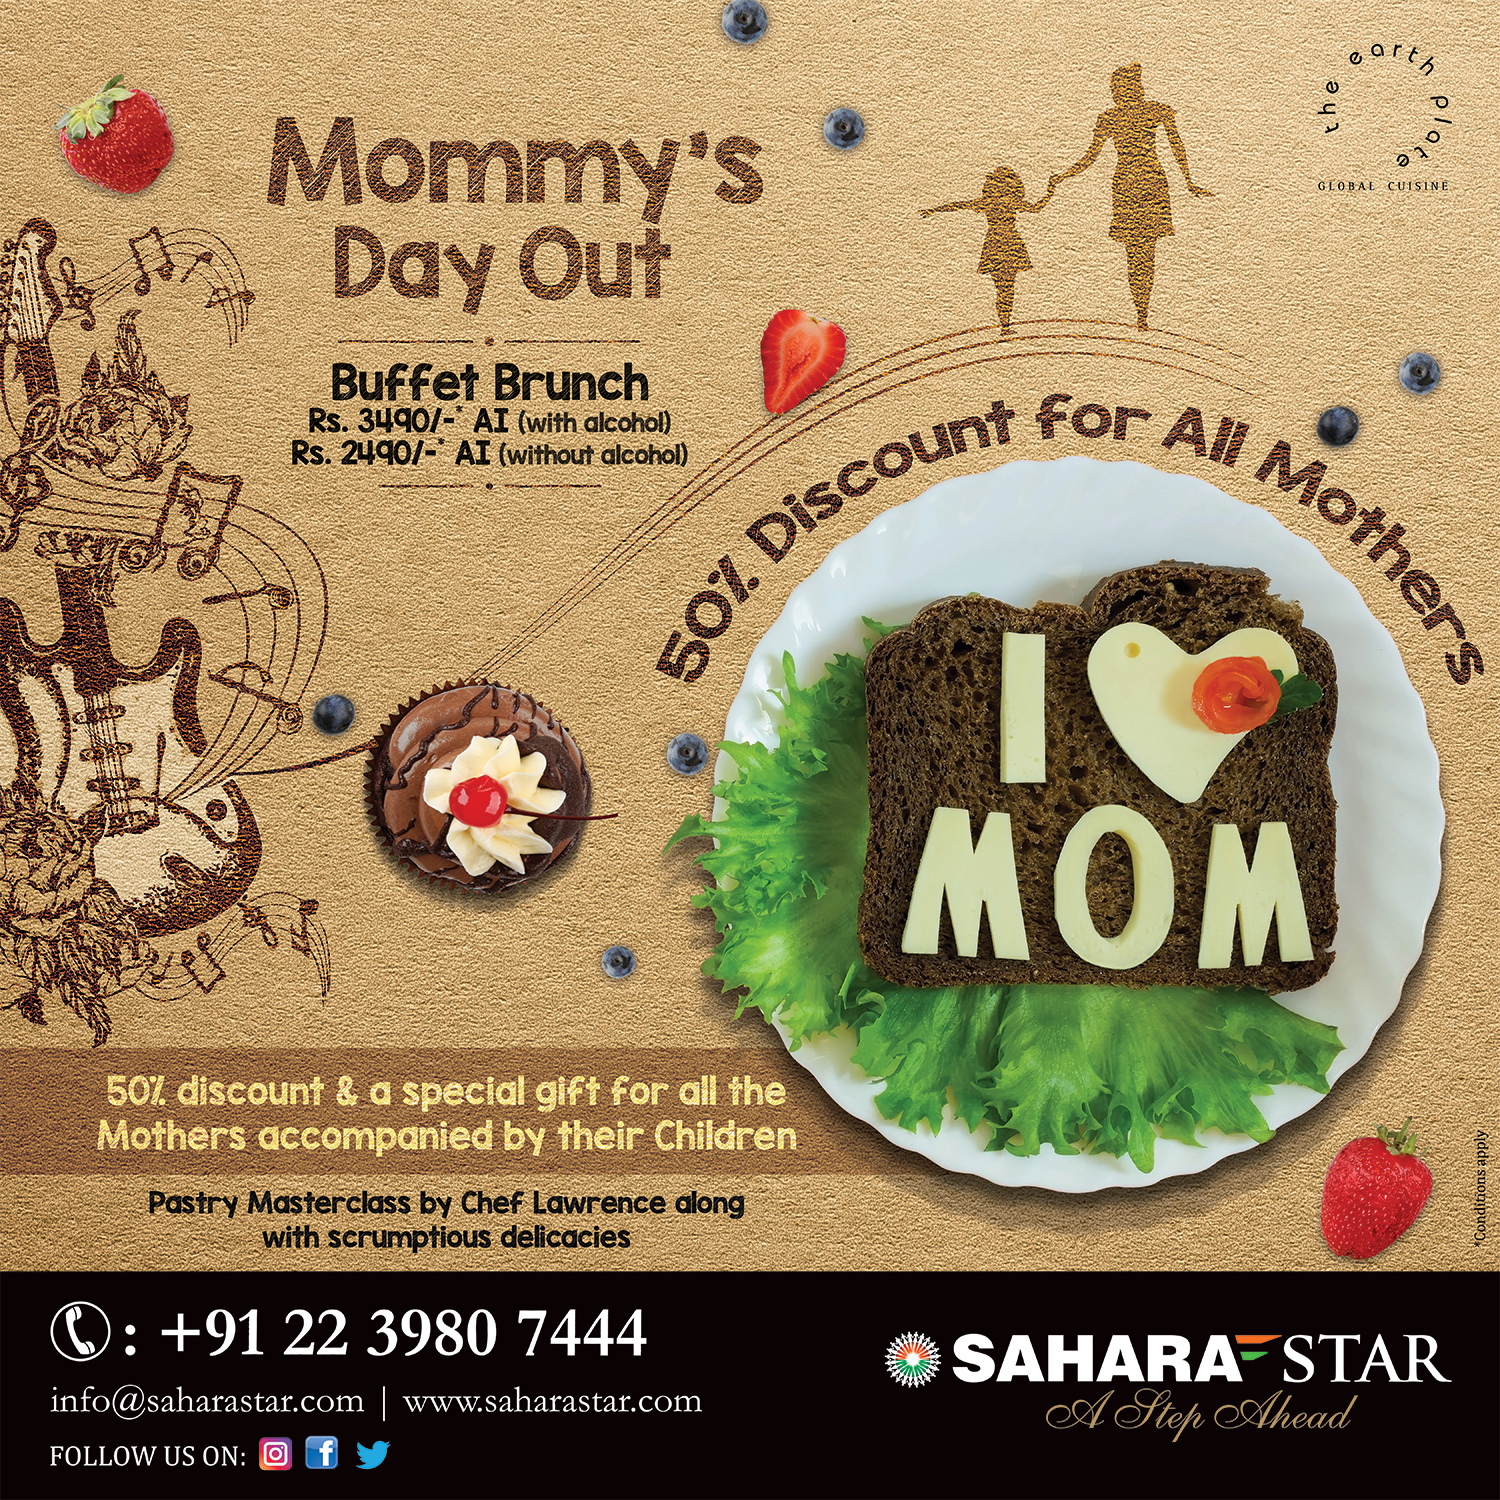 Mommy's day out at Hotel Sahara Star this Mother's Day